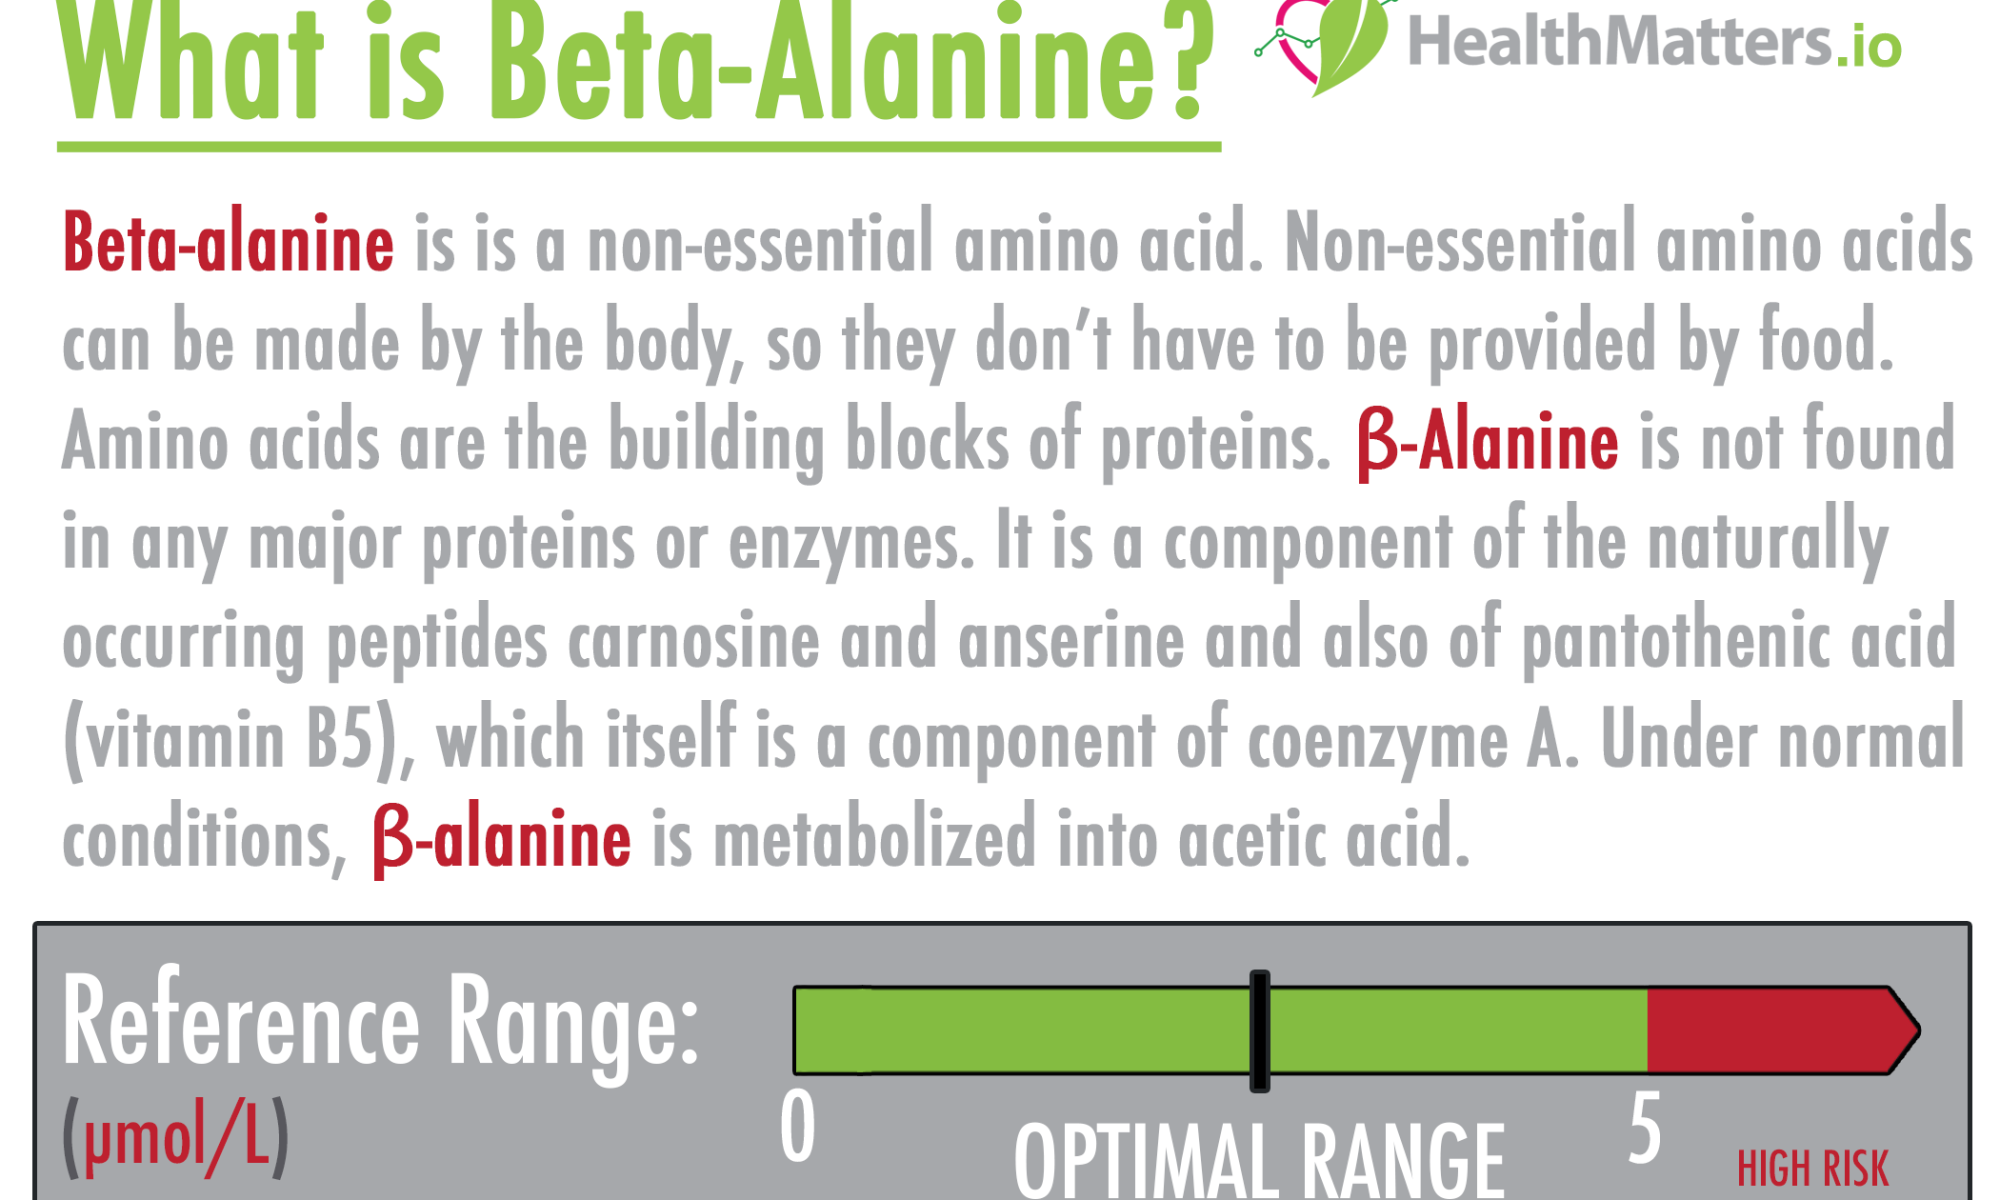 beta-alanine genova high low amino acid non-essential result report meaning treatment